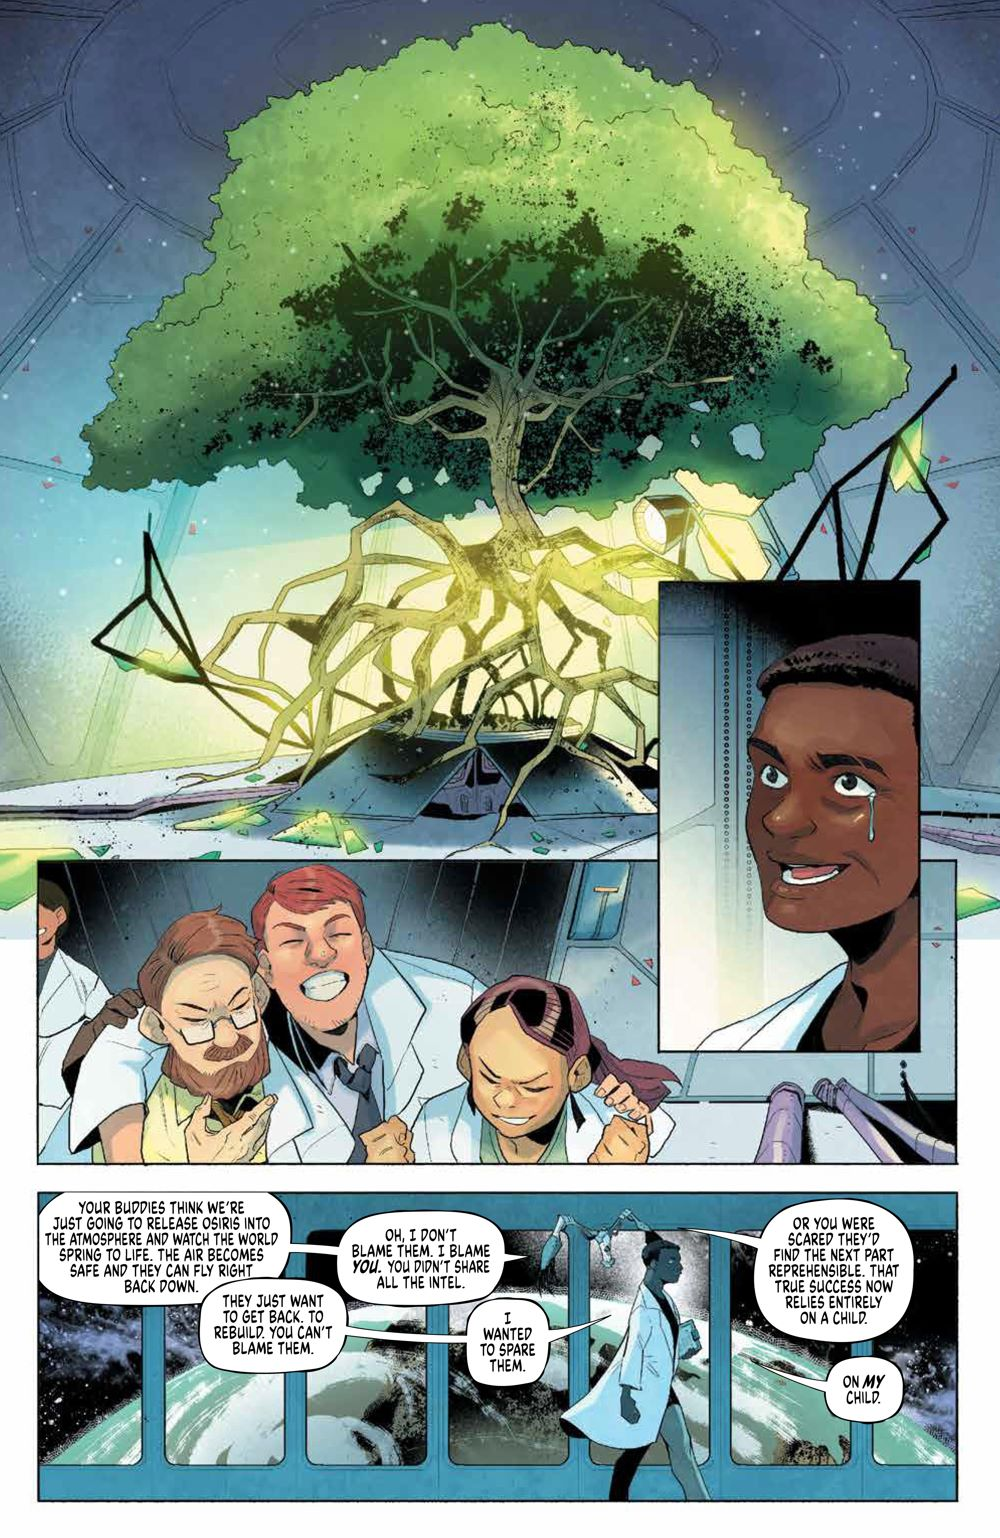 Eve_002_PRESS_6-1 ComicList Previews: EVE #2 (OF 5)